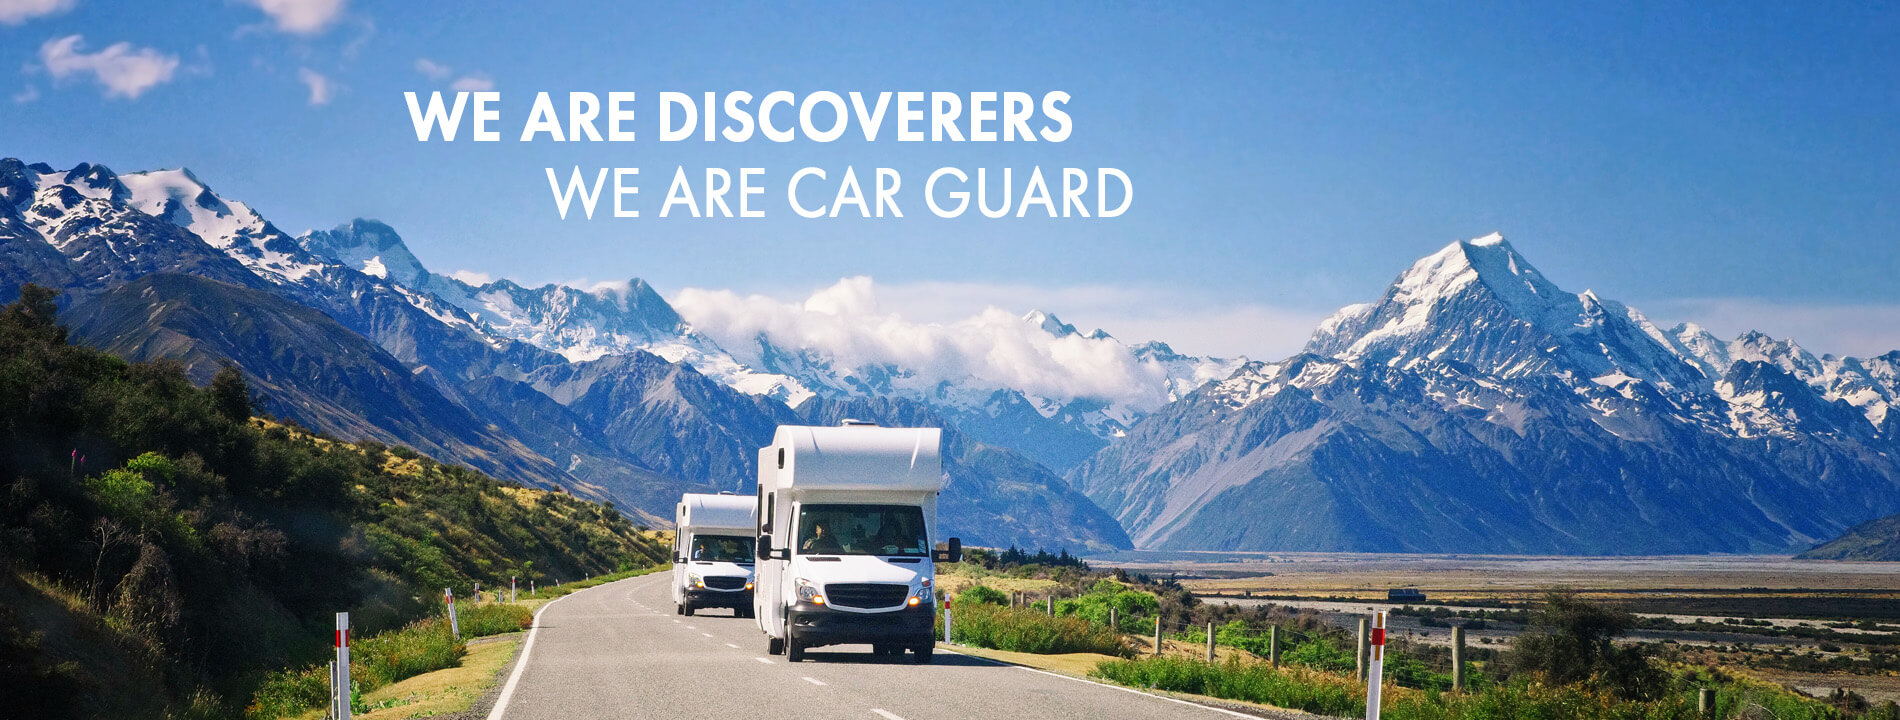 We are discoverers - We are Car Guard